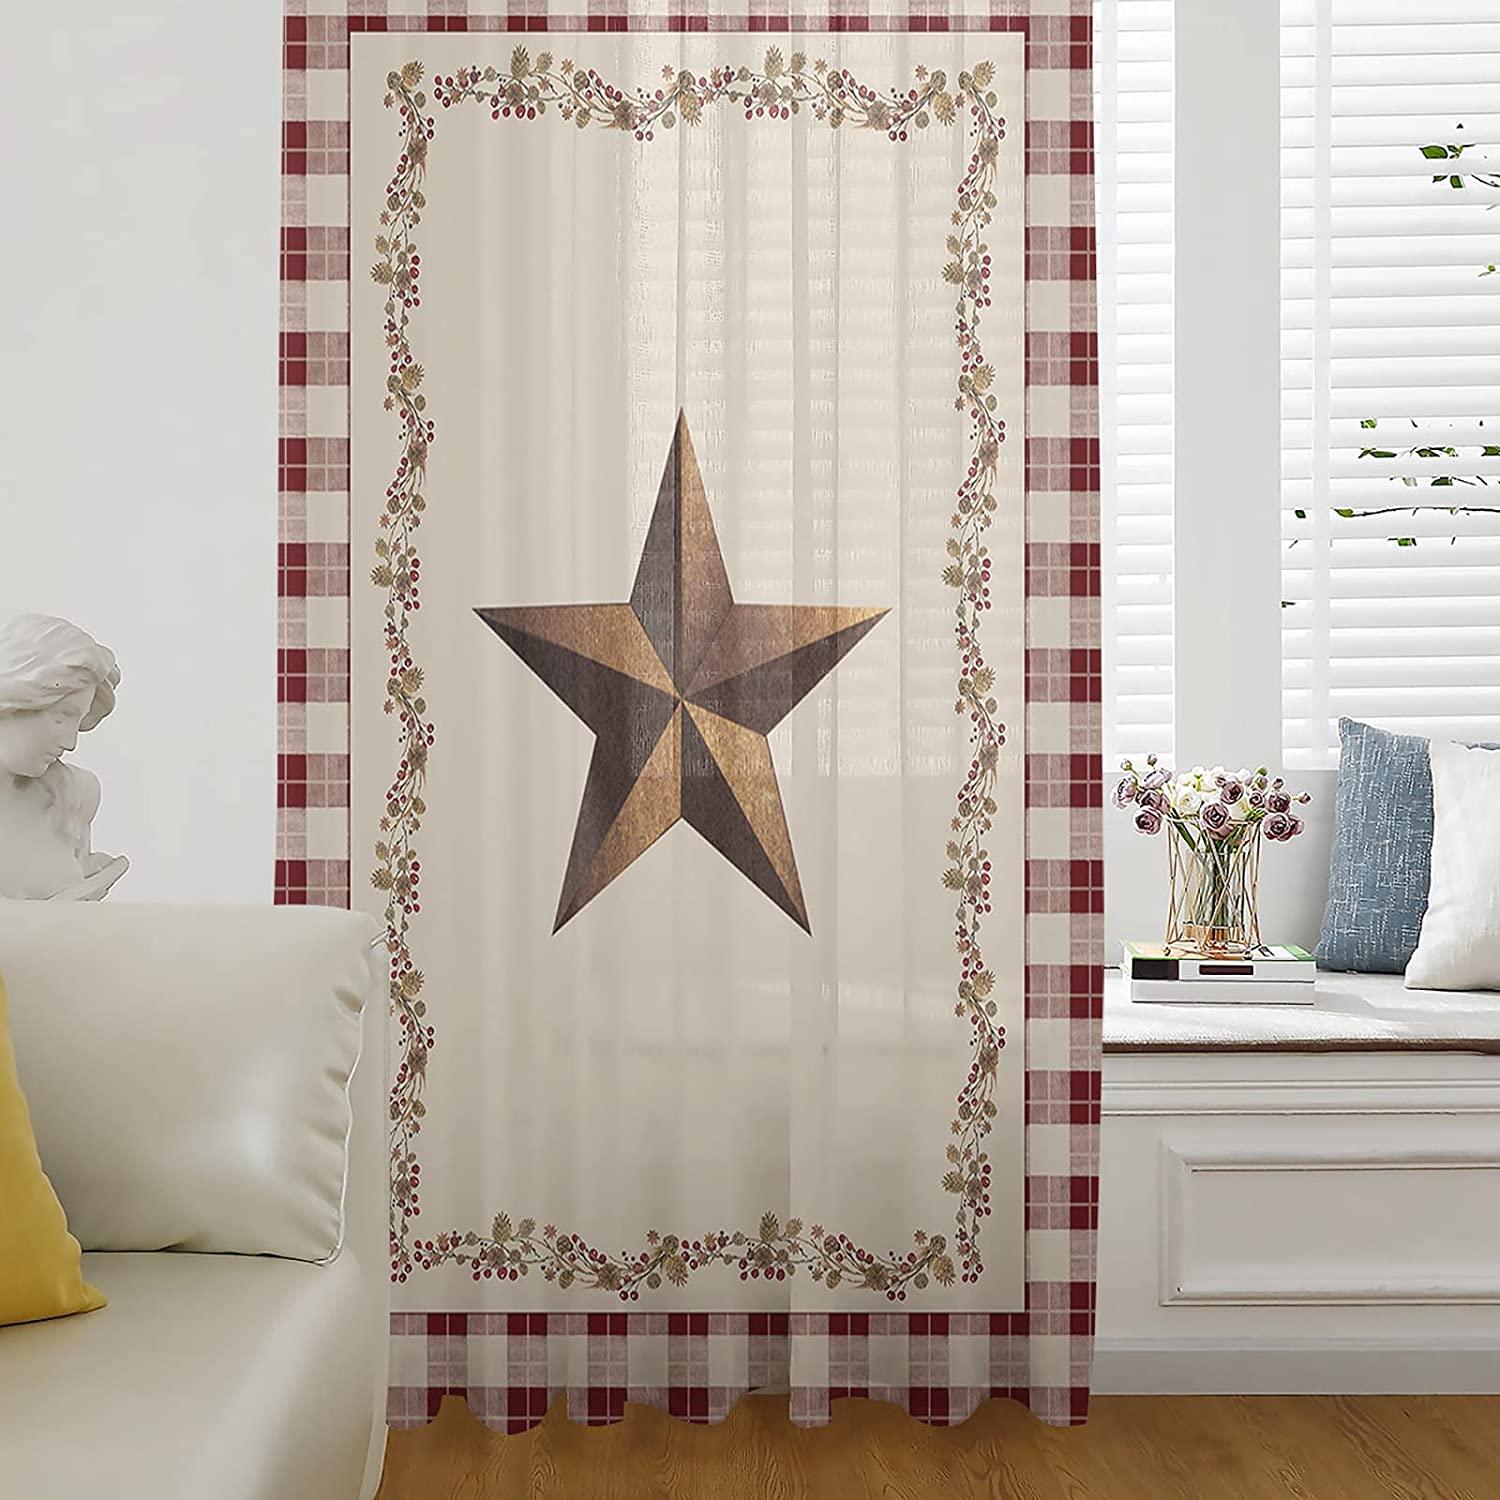 Popular shop is the lowest price challenge Sheer Window Curtains Breathable Curtain Panel American Country Super special price